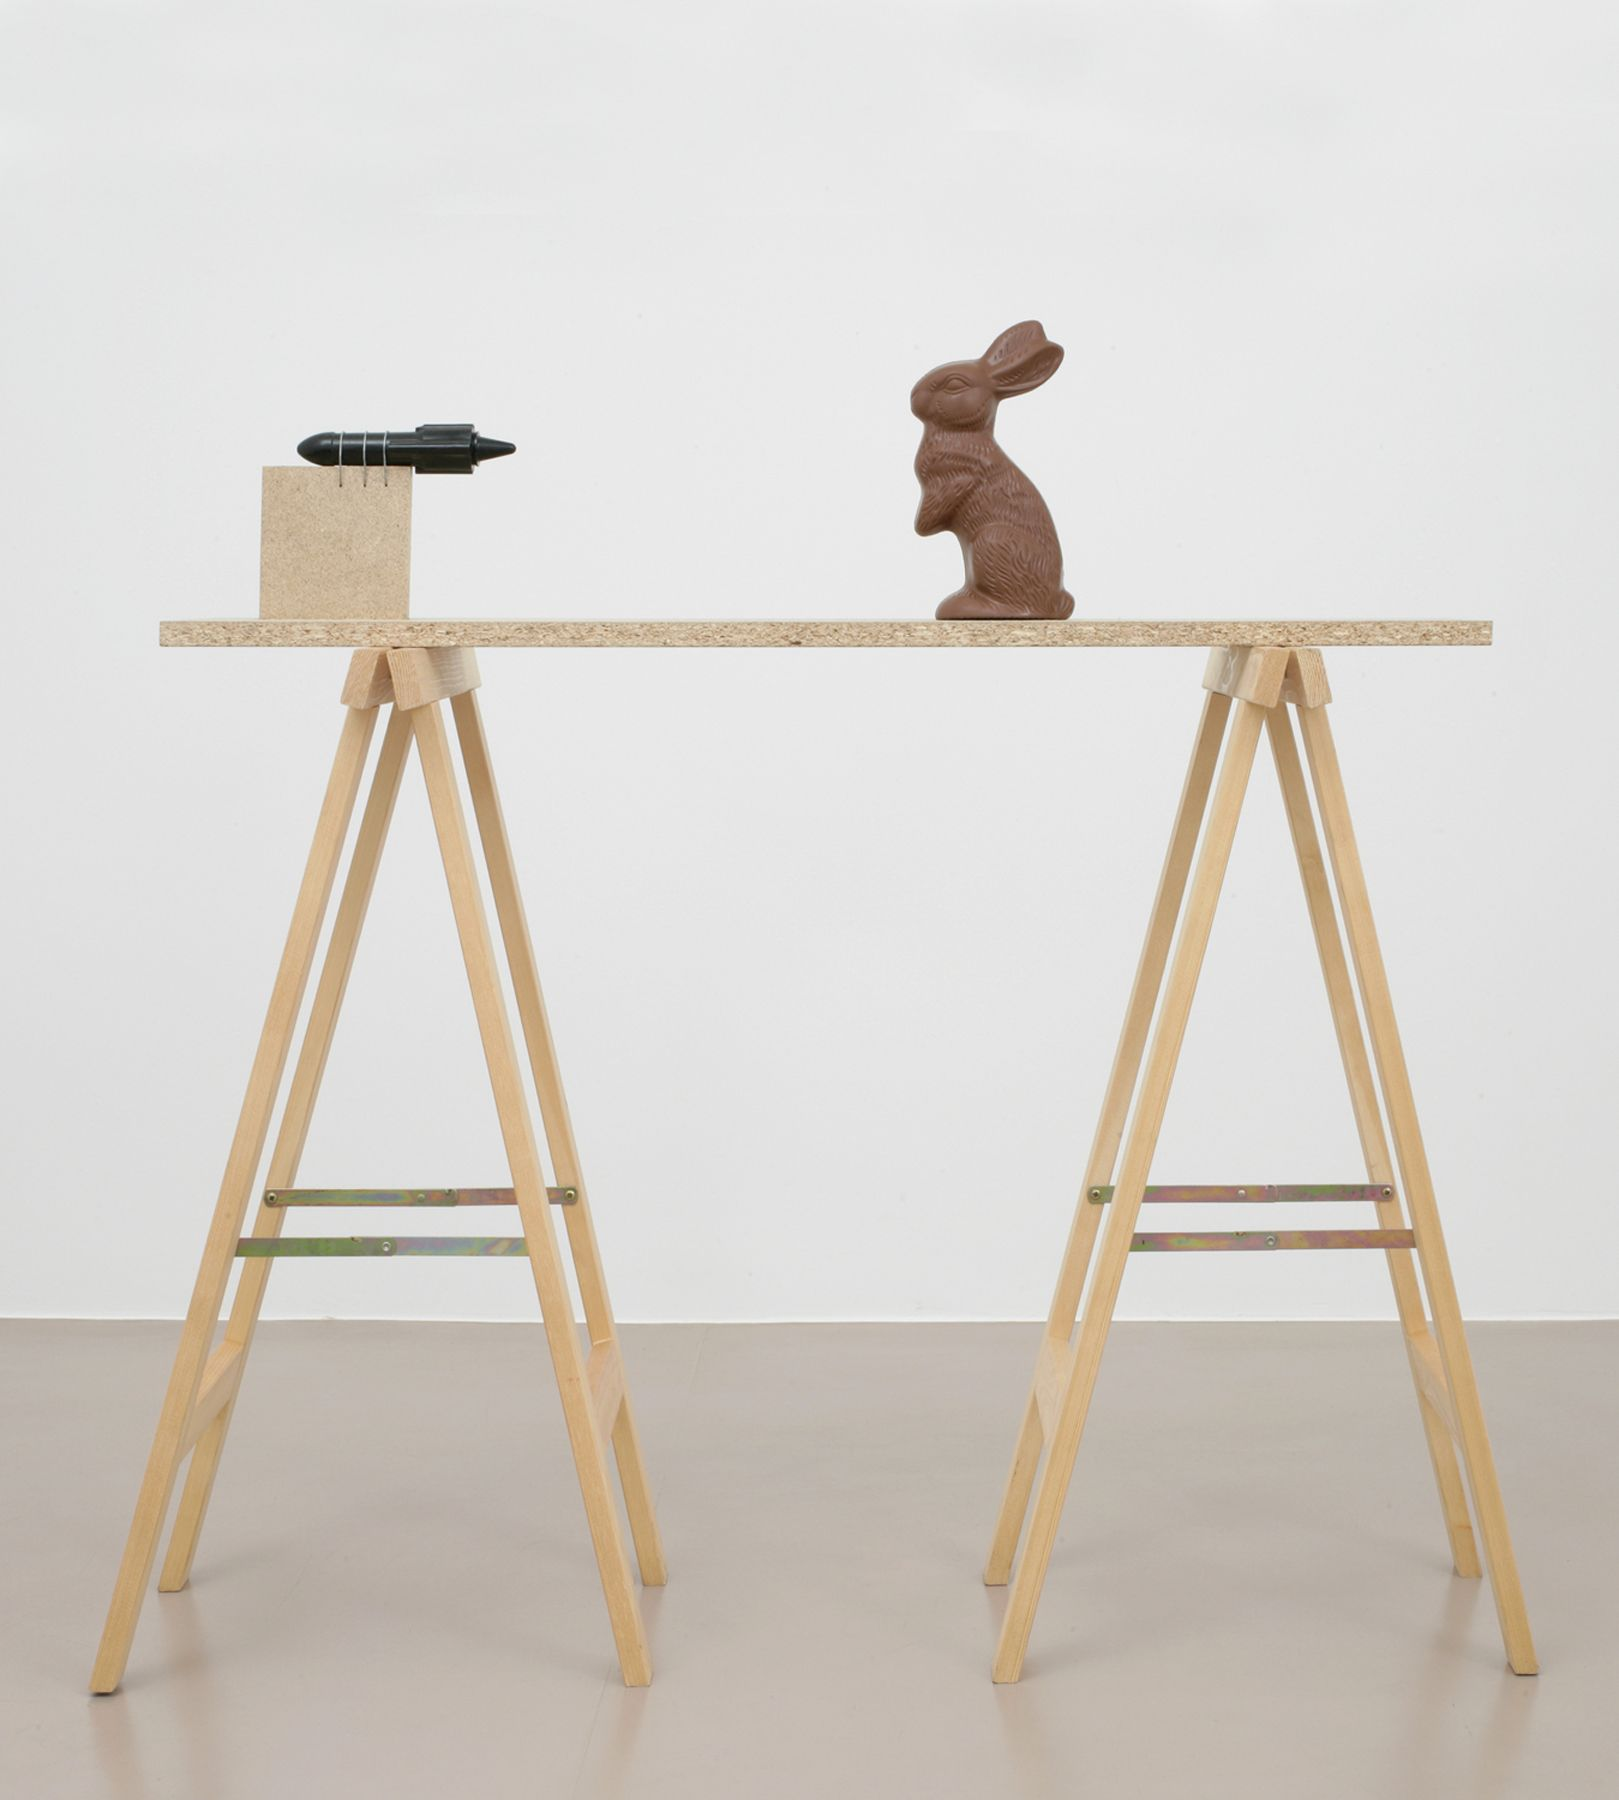 installation by roman signer featuring a rocket aimed at a chocolate easter bunny